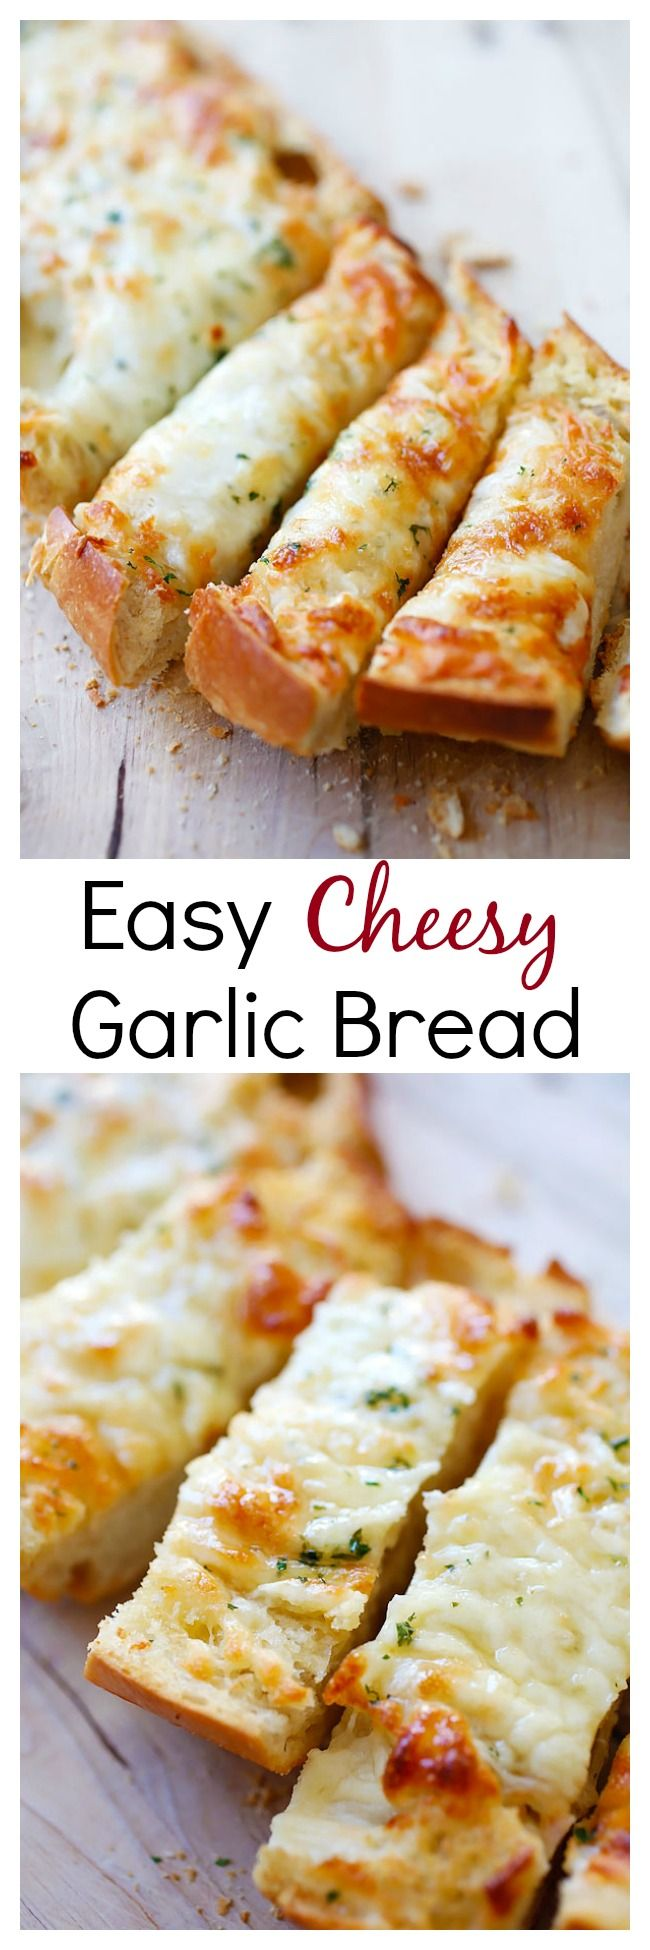 Easy Cheesy Garlic Bread – Turn regular Italian bread into buttery & cheesy garlic bread with this super easy recipe that takes only 20 mins | rasamalaysia.com @CrunchyCreamySw